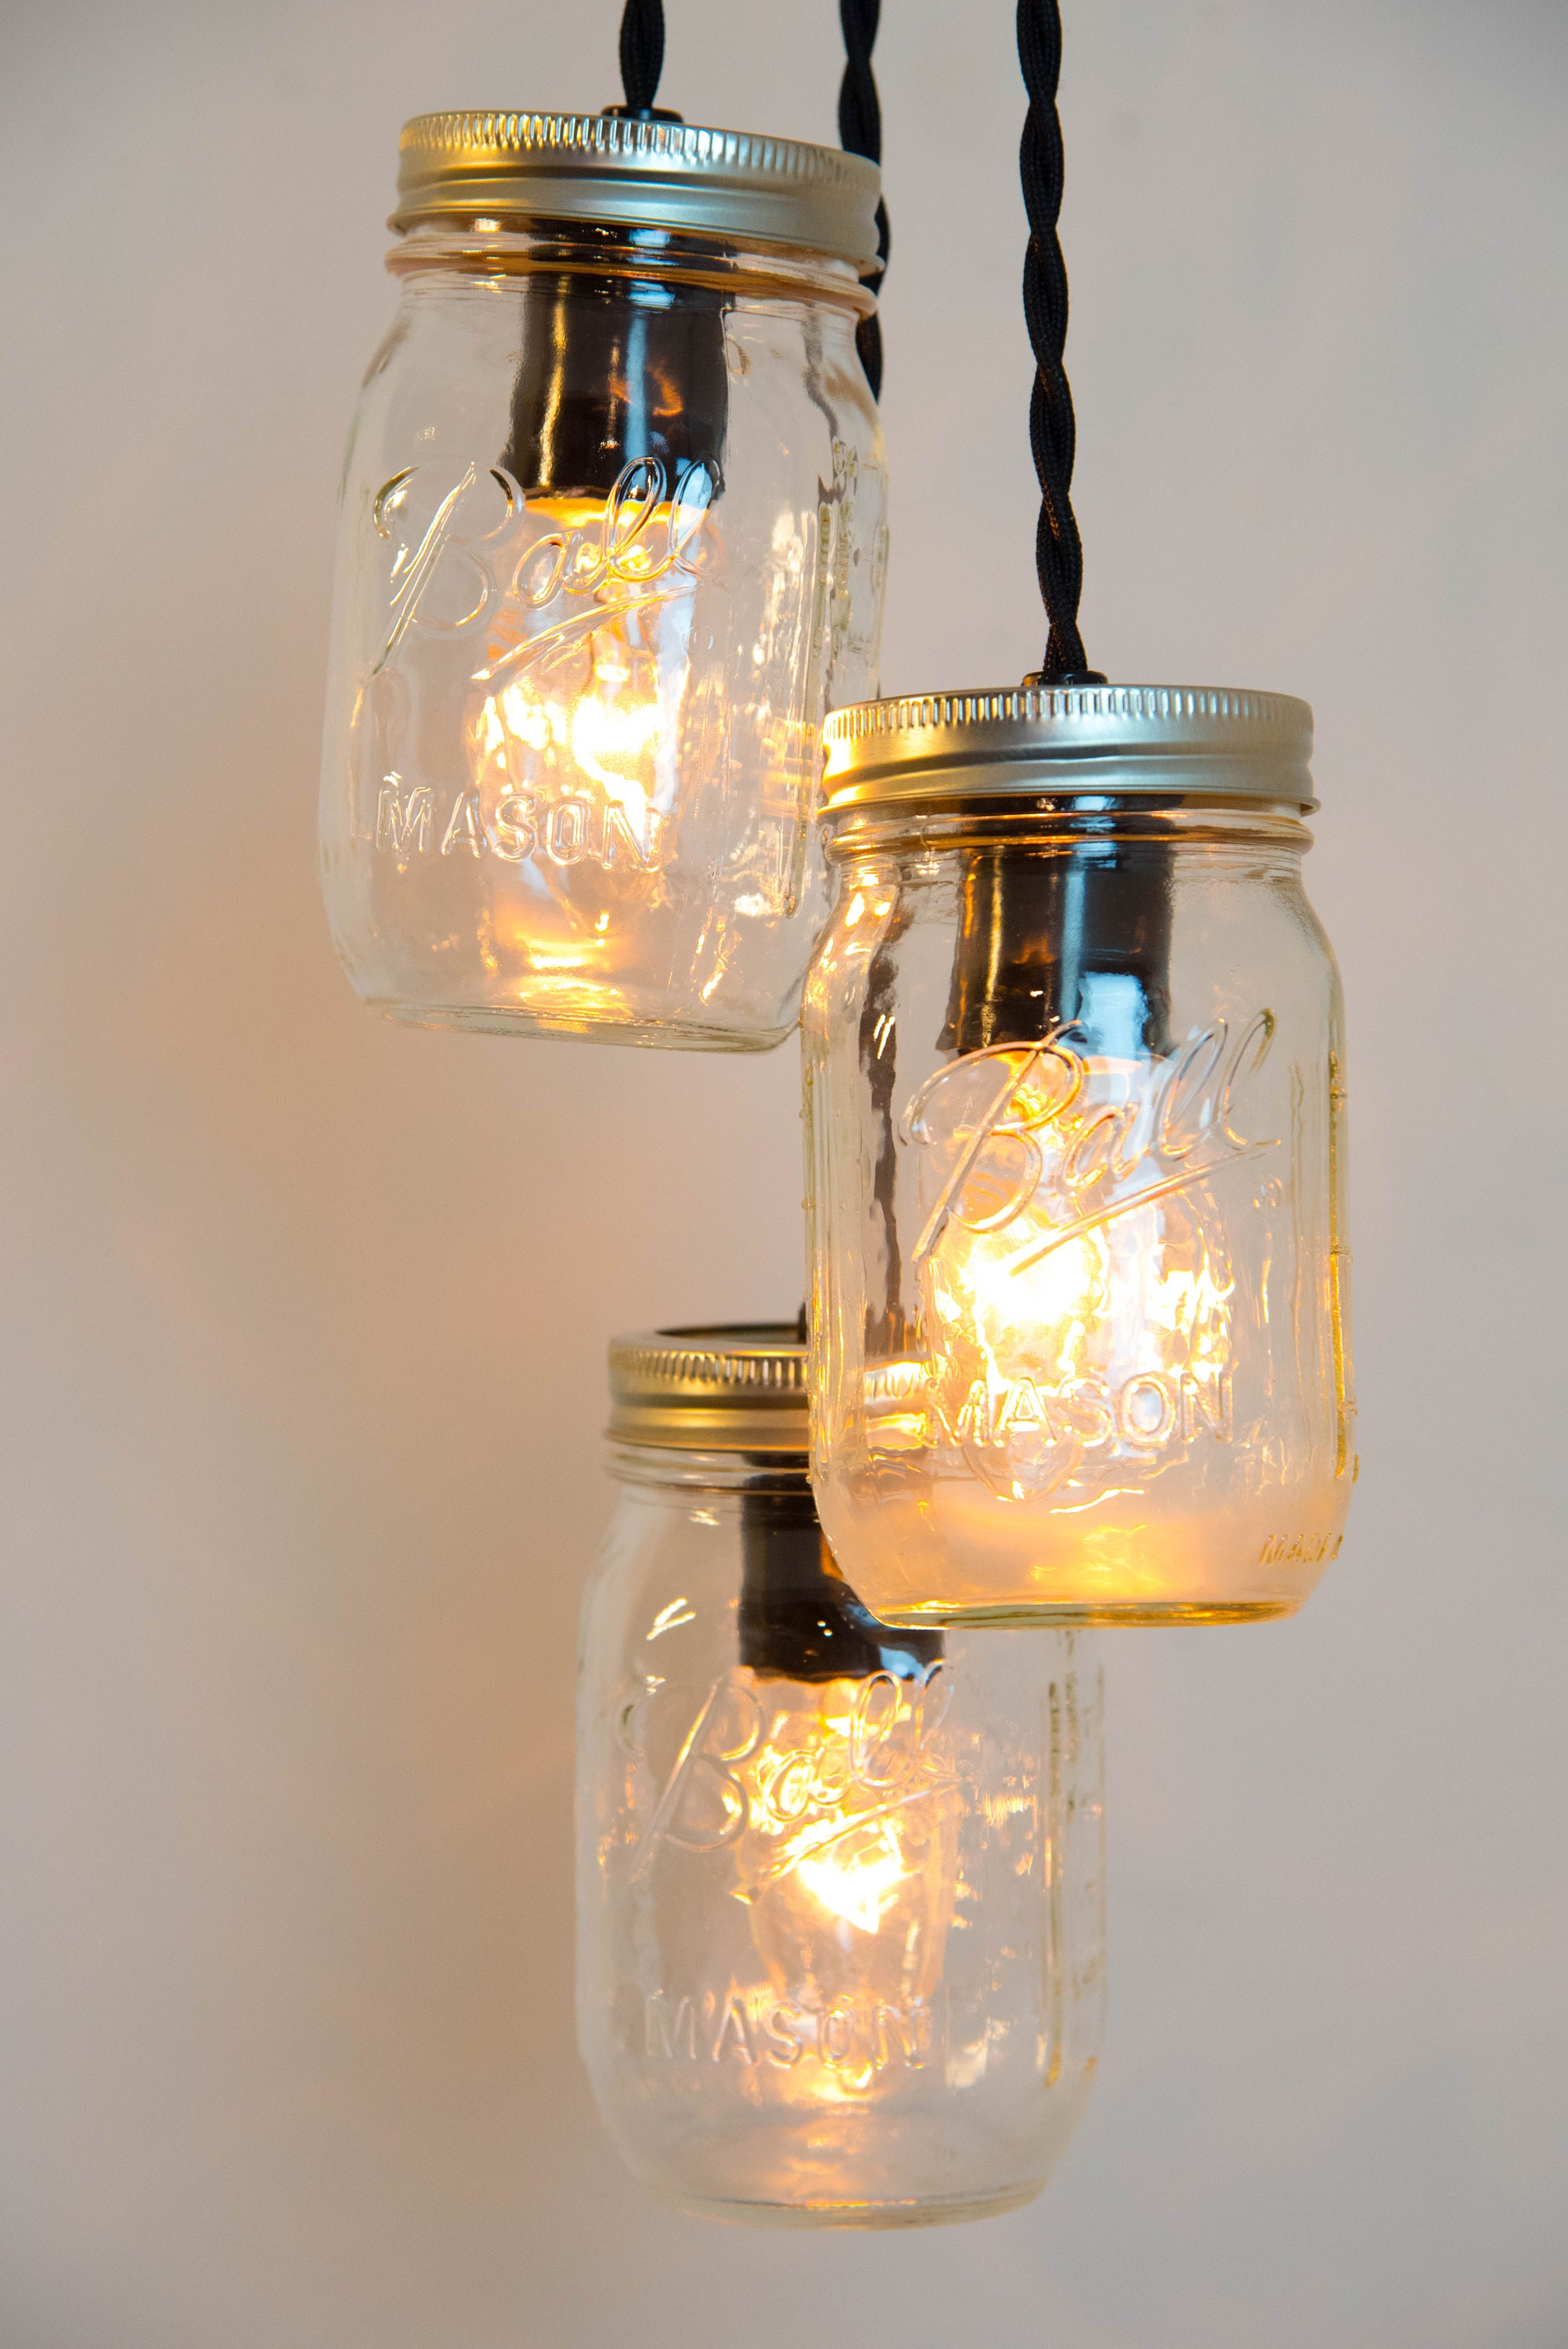 jar sconce ball light new fixtures lighting the mason exterior canning porch products goods with lamp fixture wall